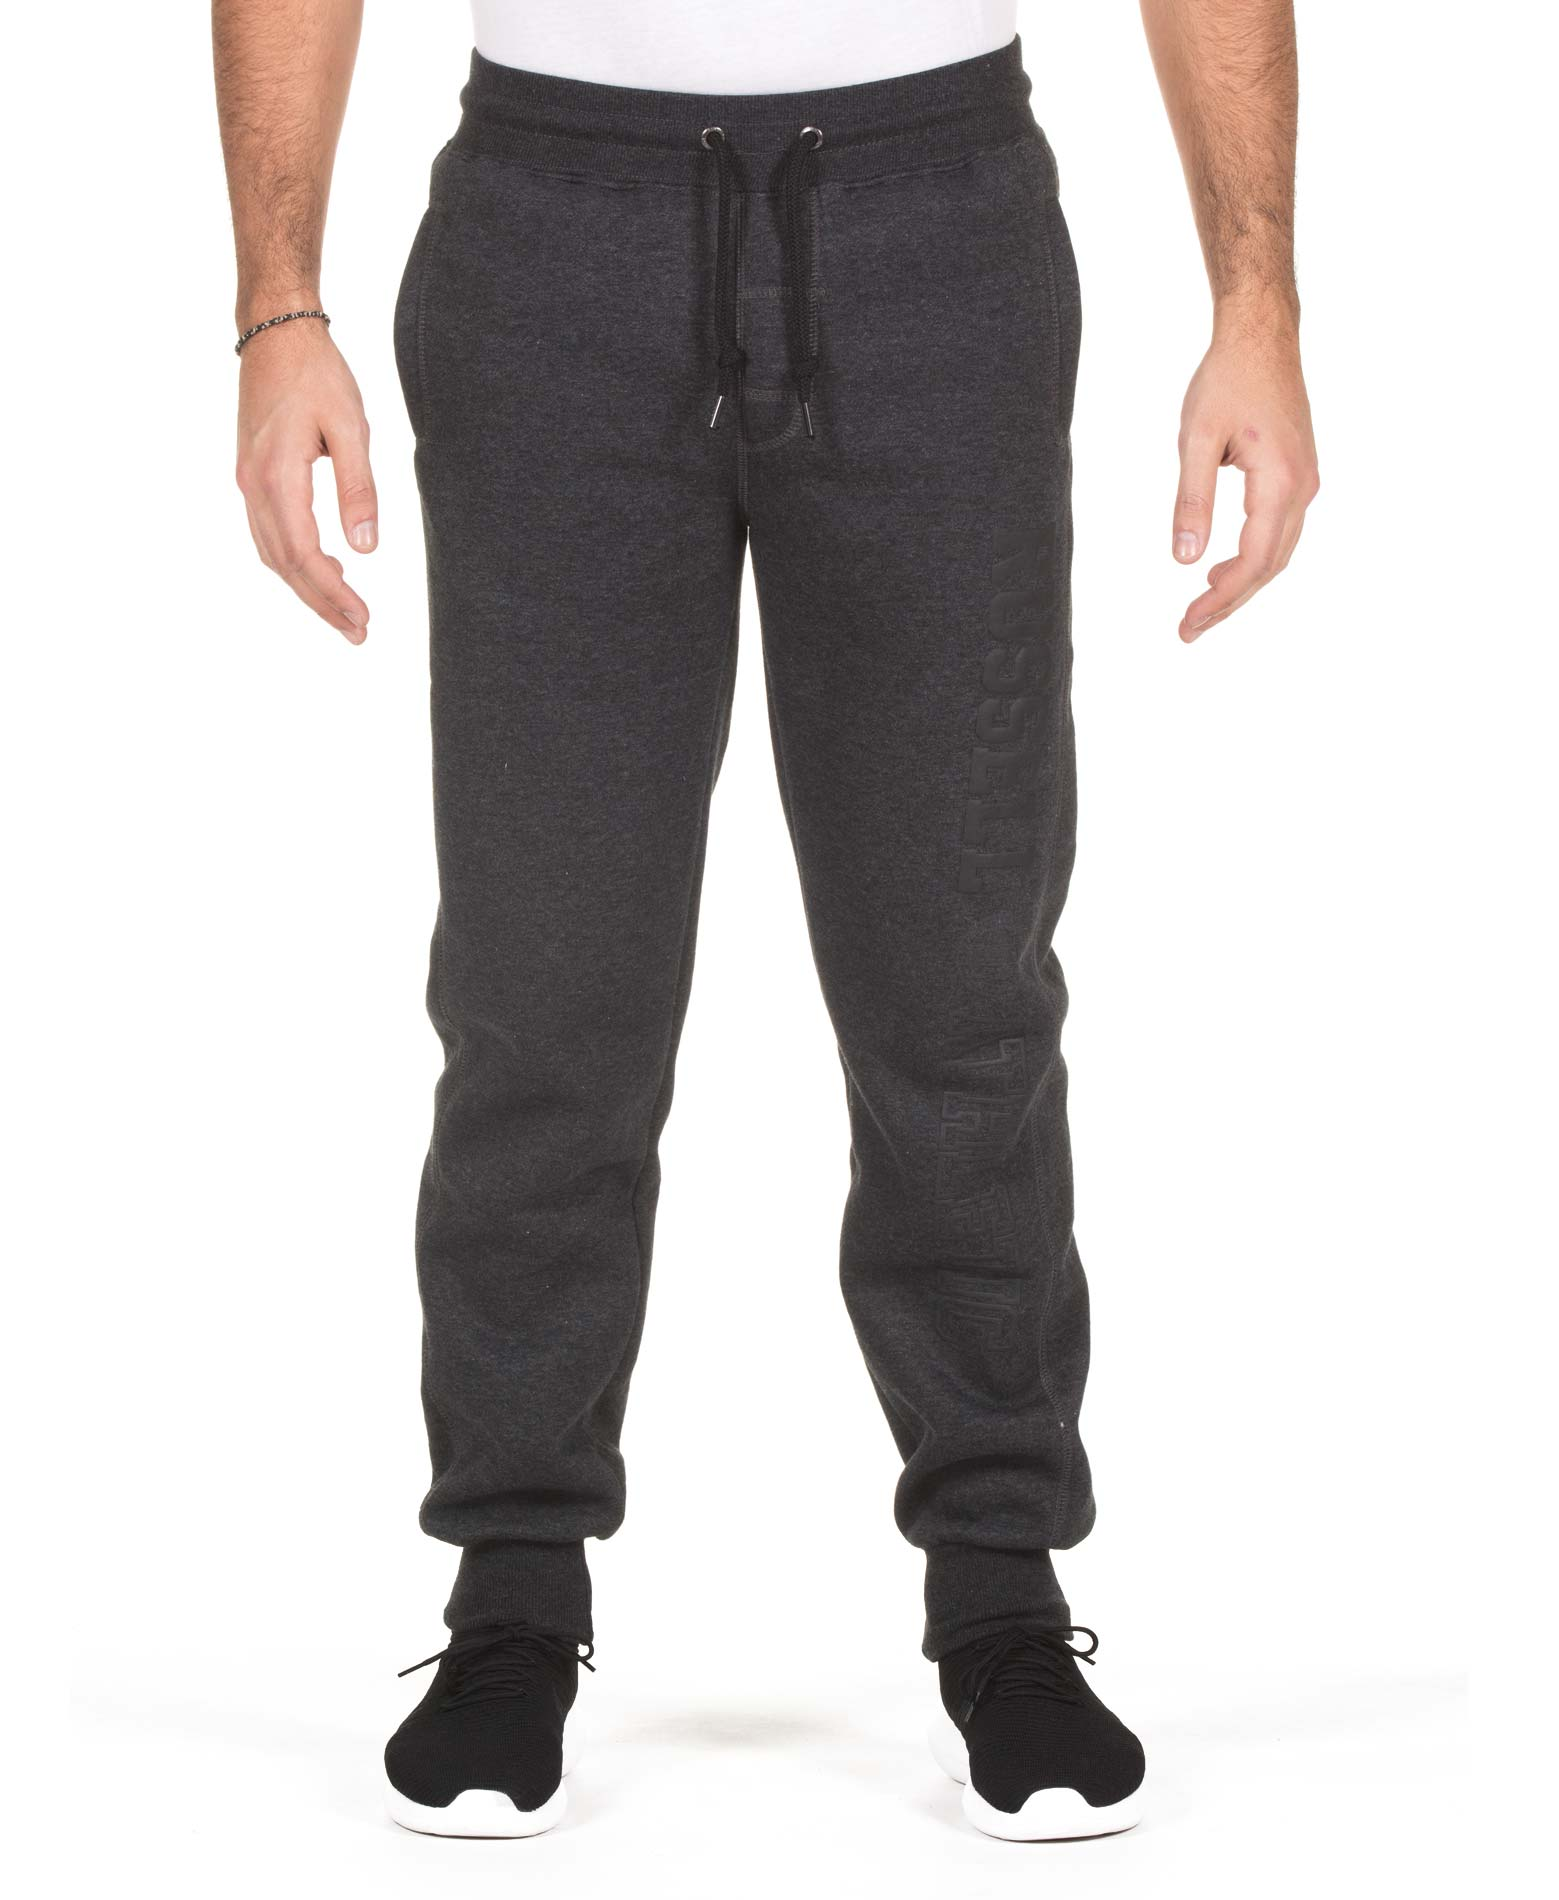 RUSSELL ATHLETIC COLLEGIATE CUFFED PANT A7-032-2-098 Ανθρακί ανδρας   ενδύματα   παντελόνια